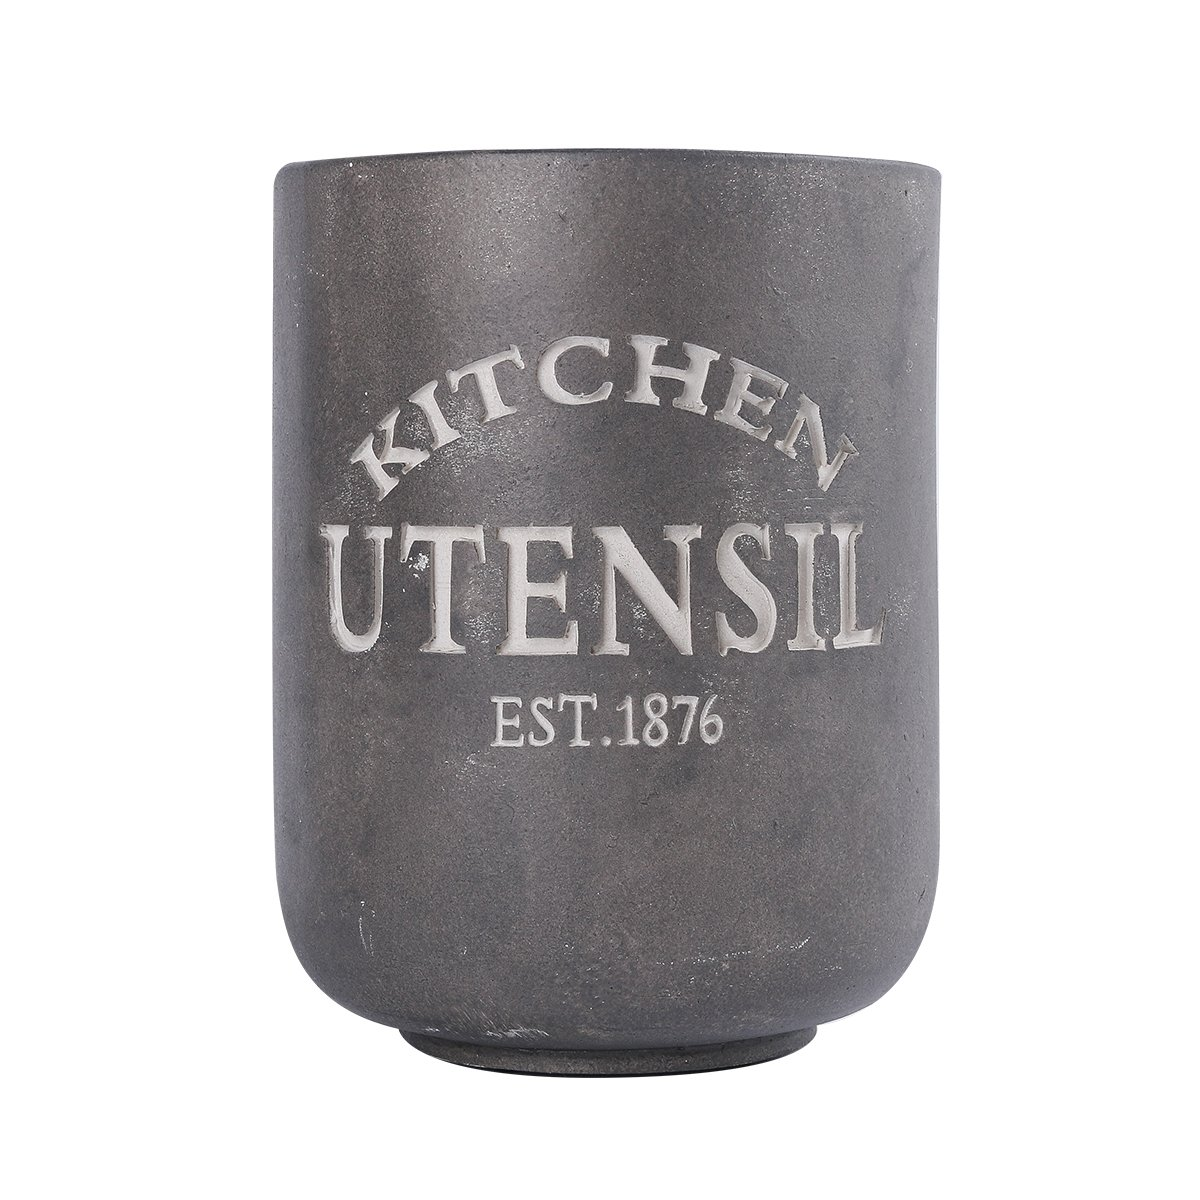 NIKKY HOME Resin Farmhouse Kitchen Utensil Crock Holder for Storage, 5.43 x 5.43 x 7.09 inches, Gray by NIKKY HOME